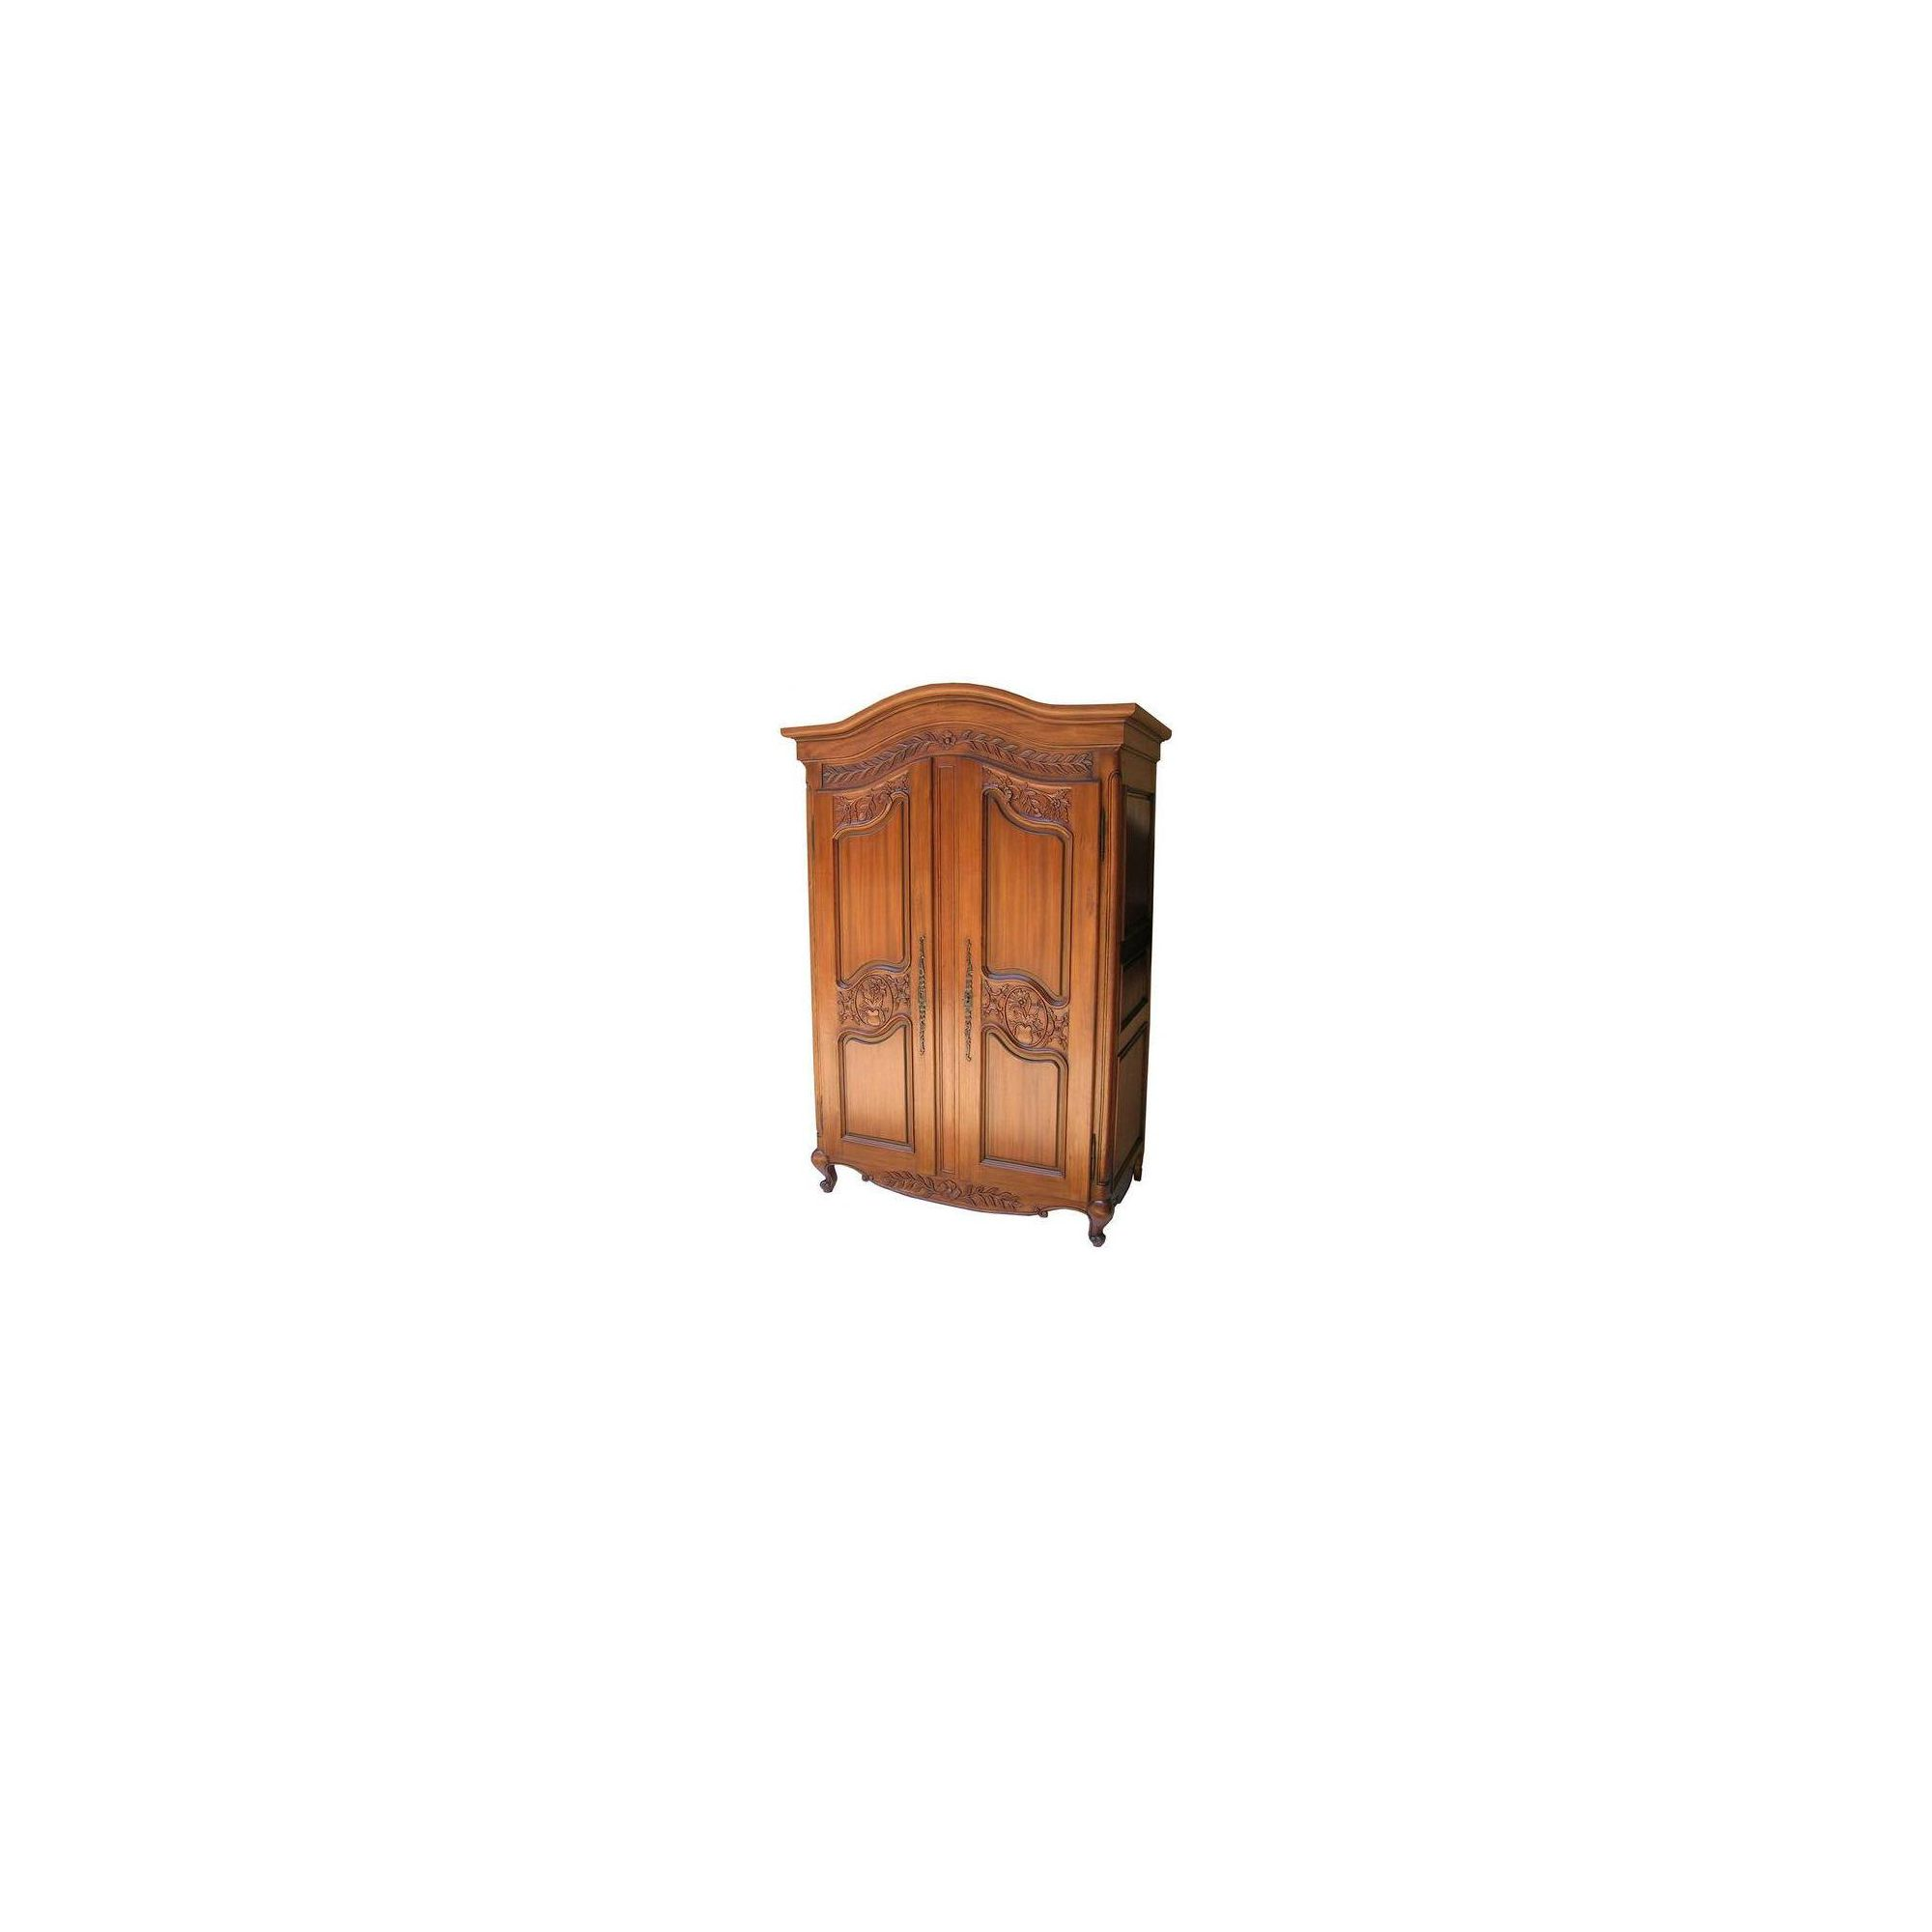 Lock stock and barrel Mahogany Arch Top Armoire with Carved Doors in Mahogany - Antique White at Tesco Direct